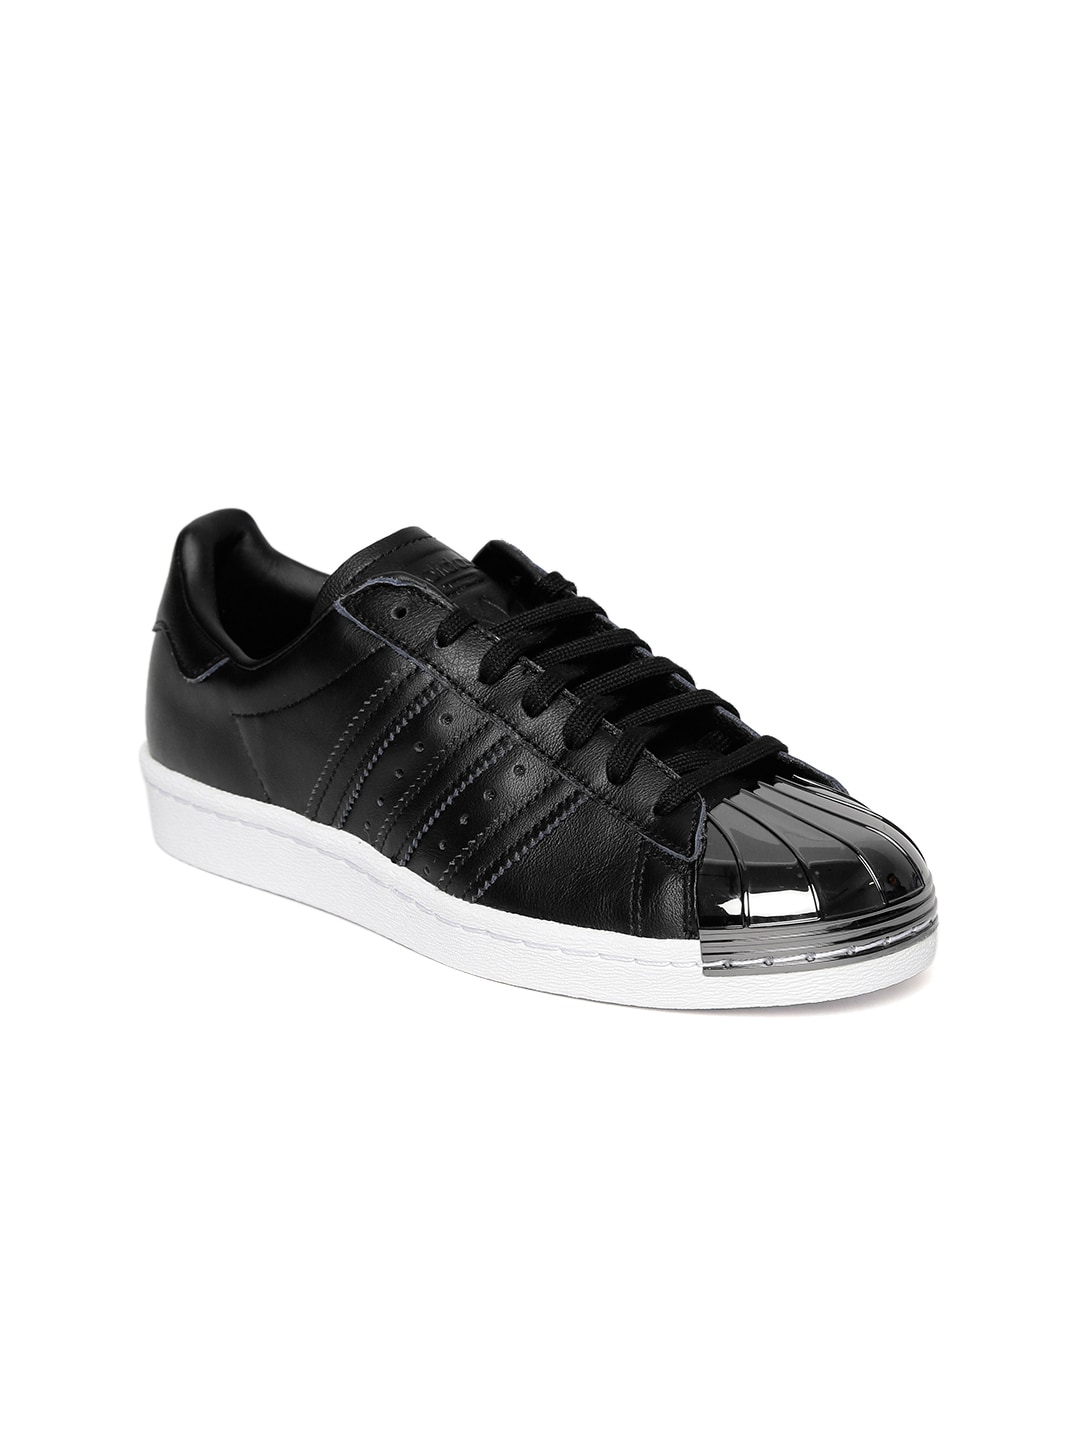 65fbc2e9b66be2 Adidas Superstar Shoes - Buy Adidas Superstar Shoes Online - Myntra